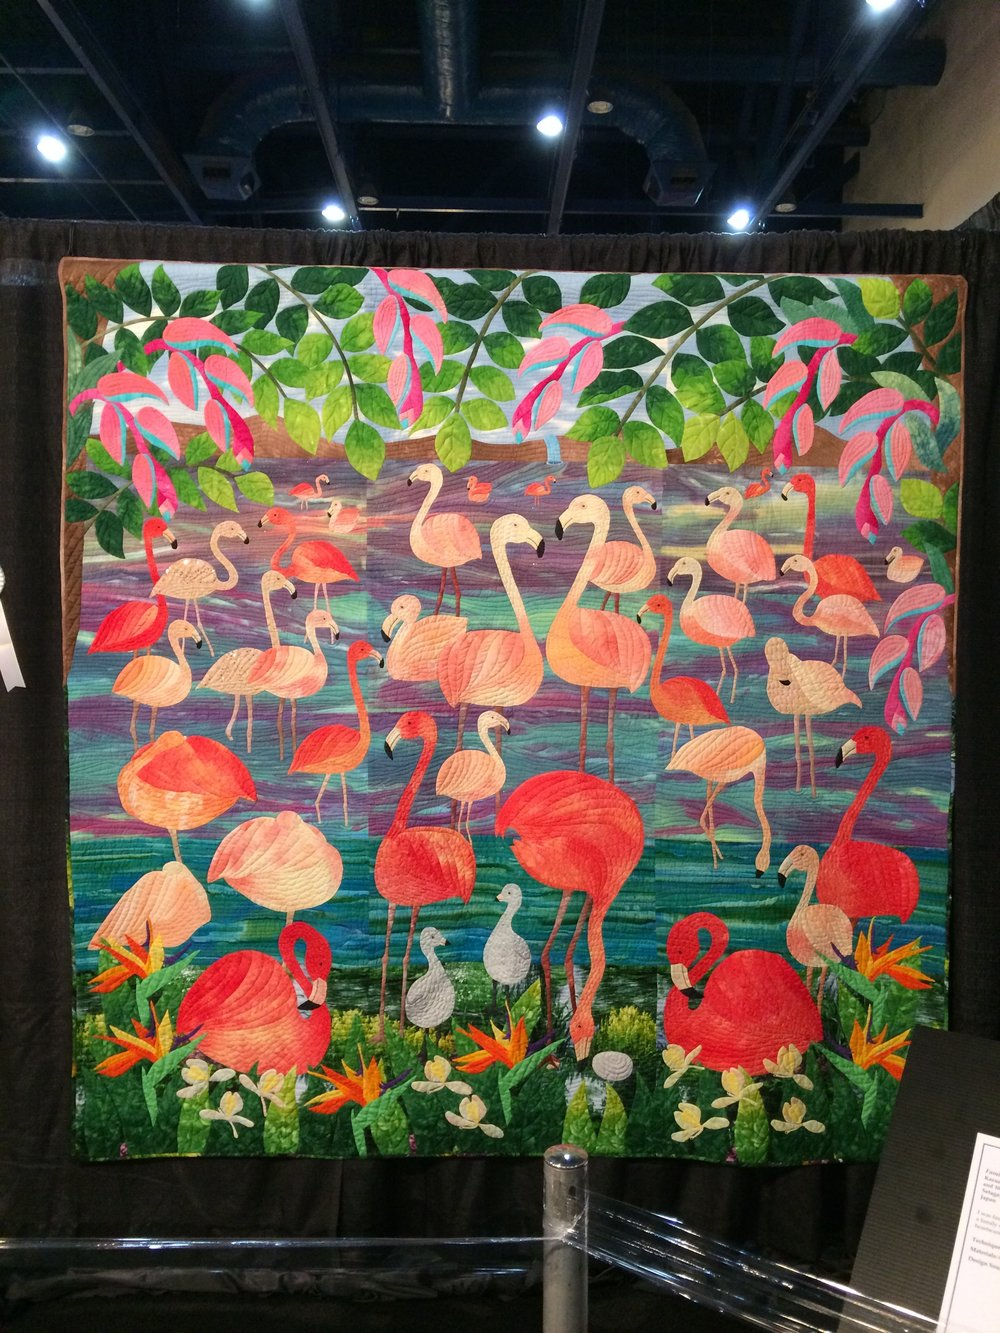 Family of Rainbow-Colored Flamingo  by Kazue Kamura